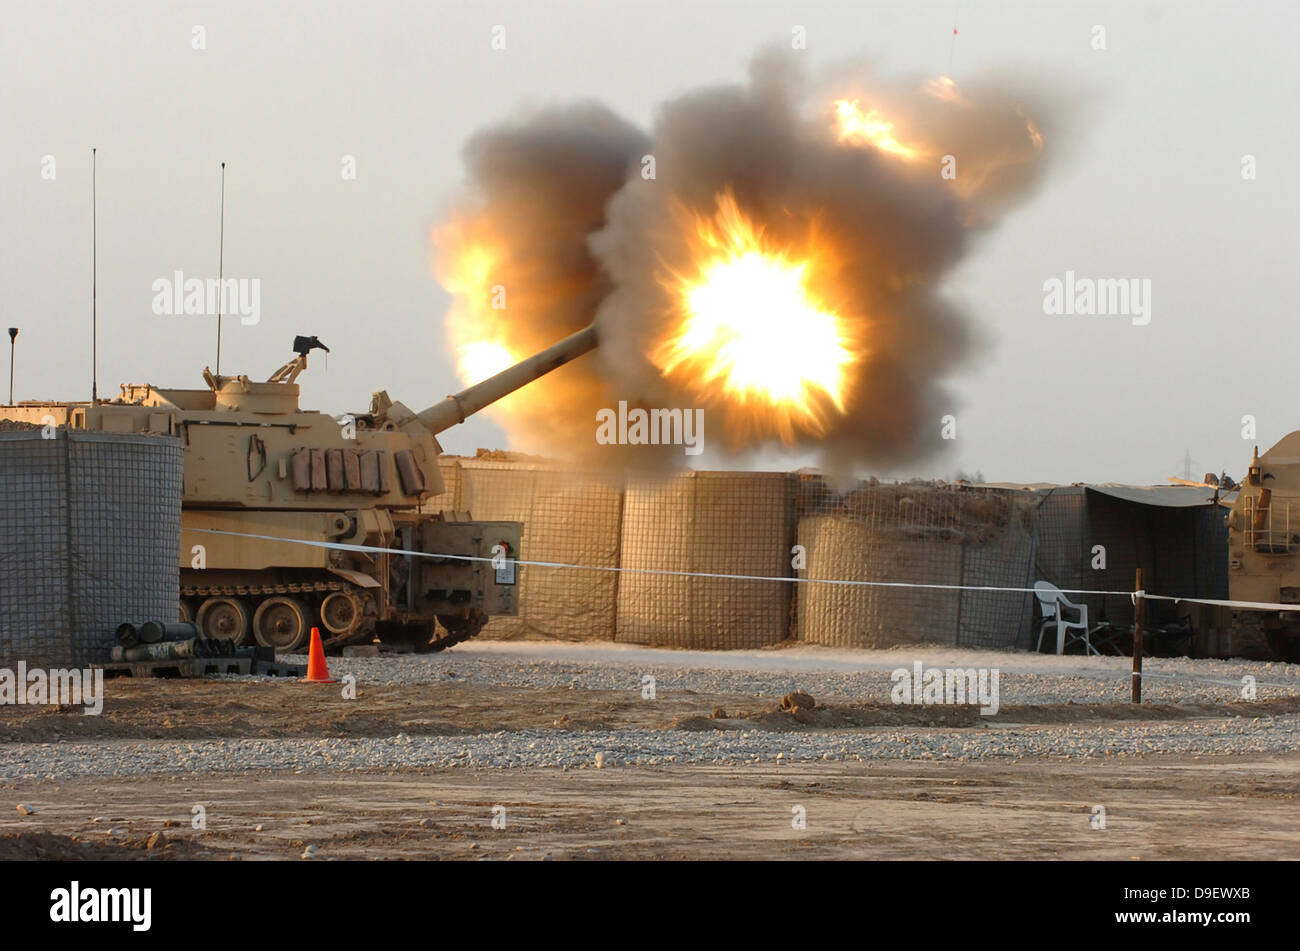 Soldiers fire the howitzers on their M109A6 Paladins. - Stock Image